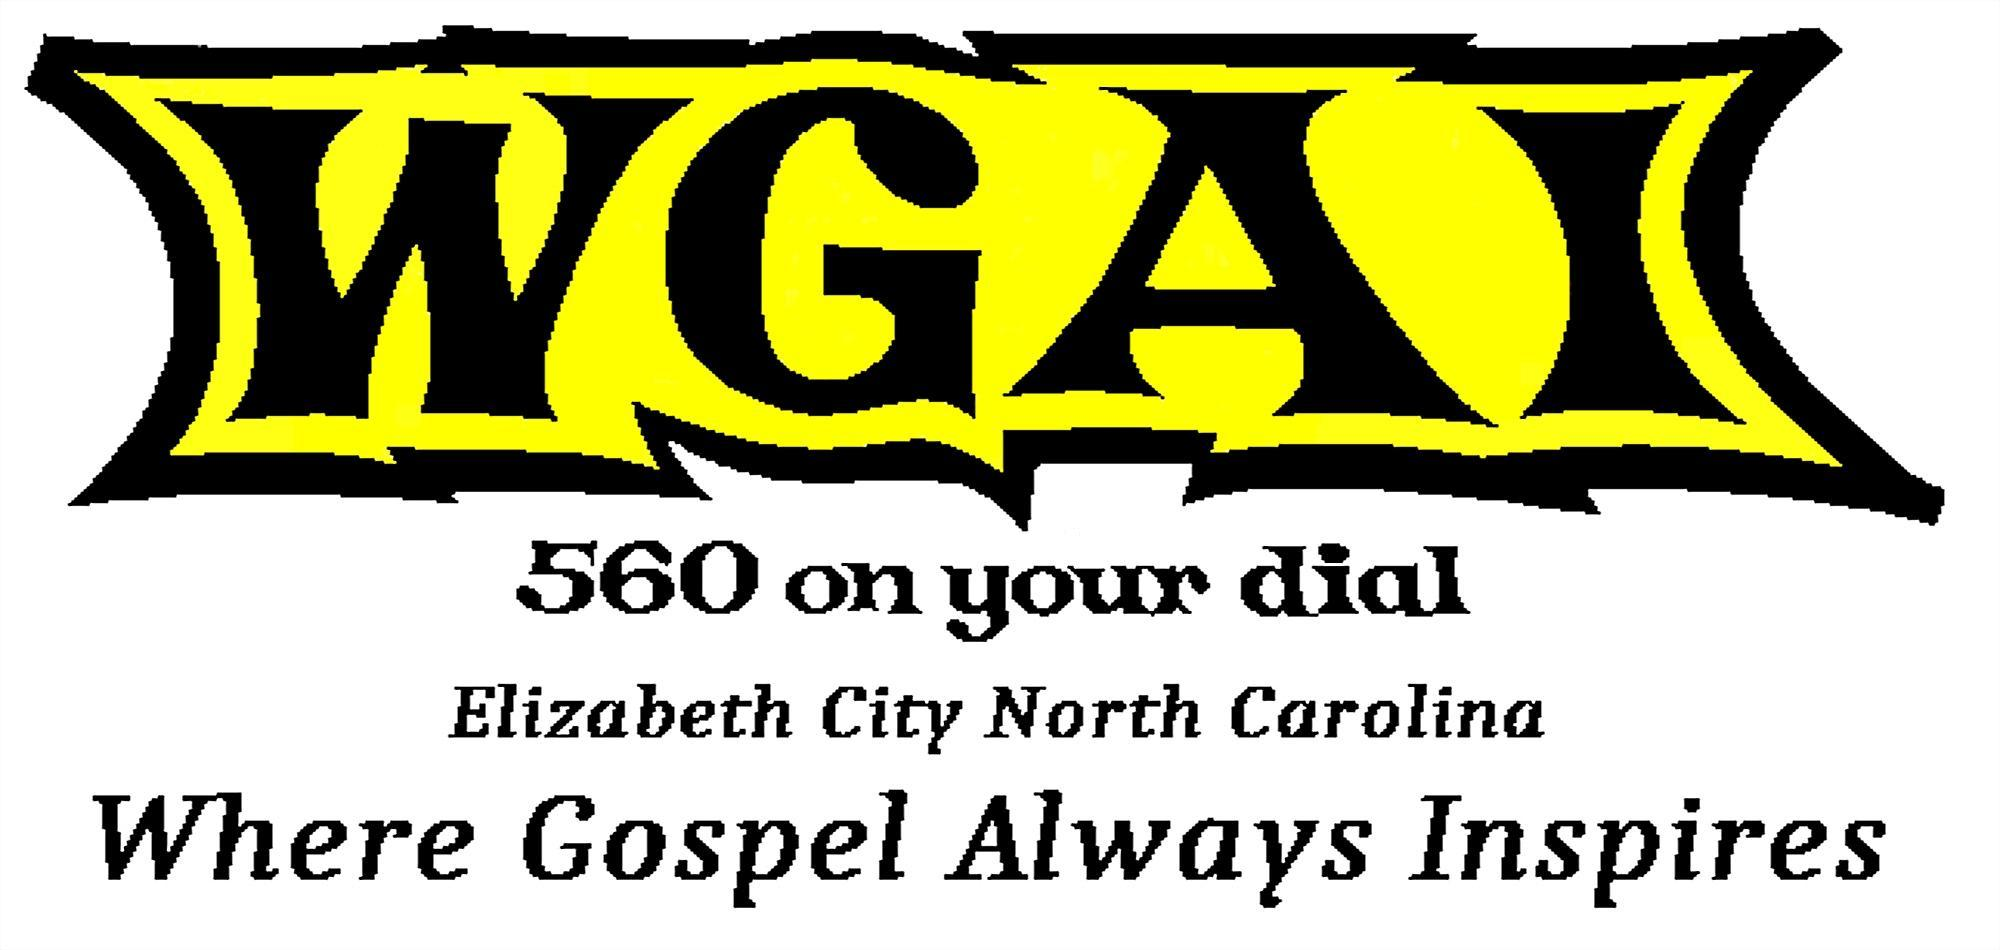 WGAI-AM 560 Elizabeth City, NC, Where Gospel Always Inspires